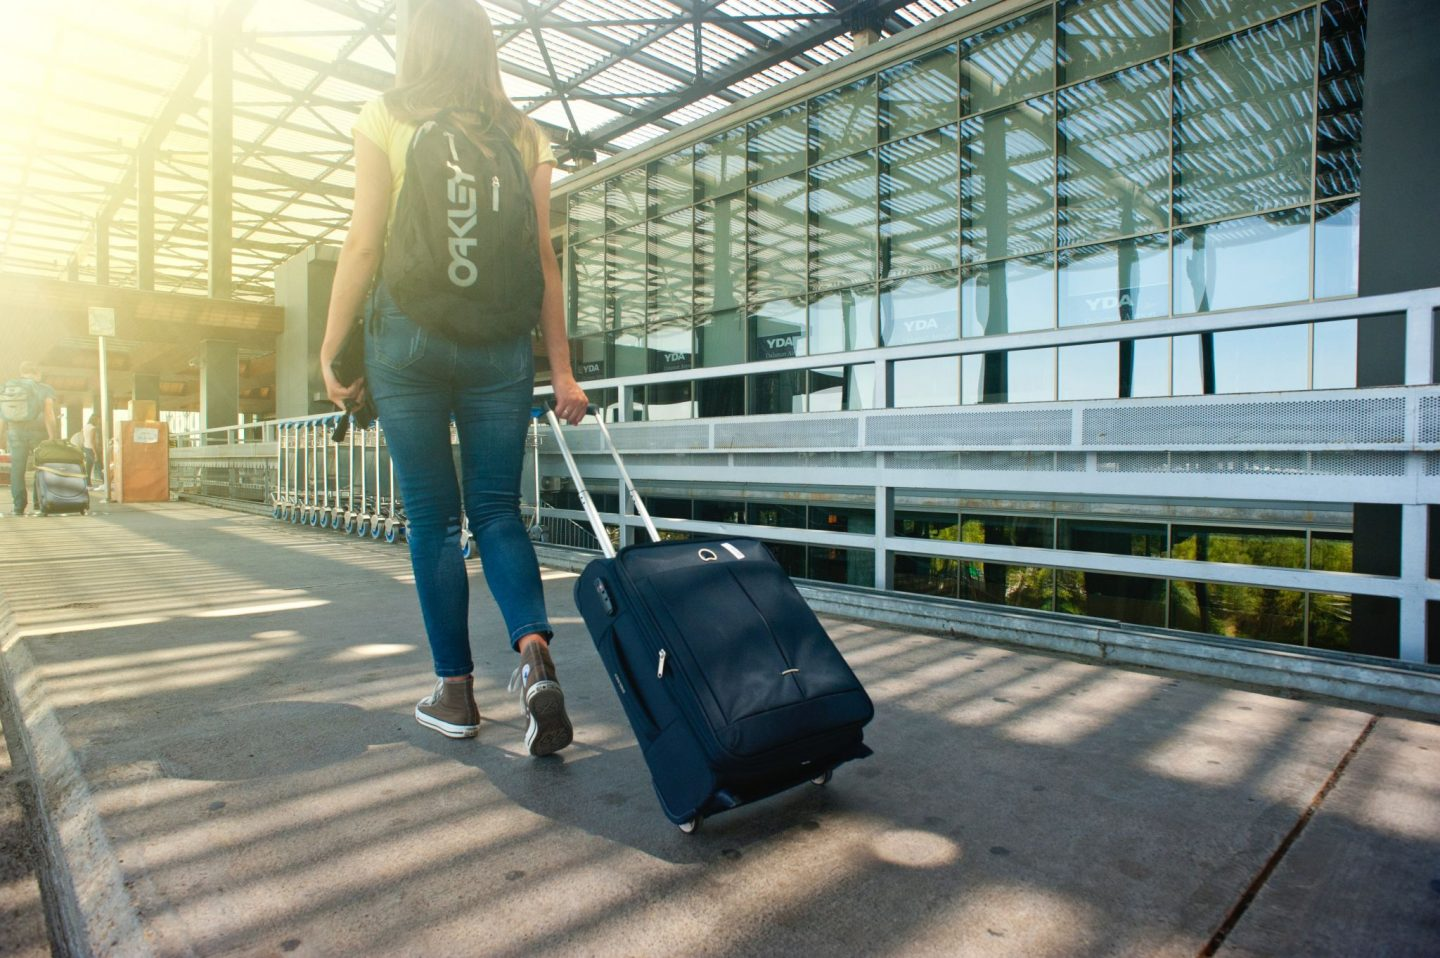 TRAVEL SAFETY TIPS THAT WILL HELP YOU IF YOU'RE A FIRST-TIME TRAVELLER